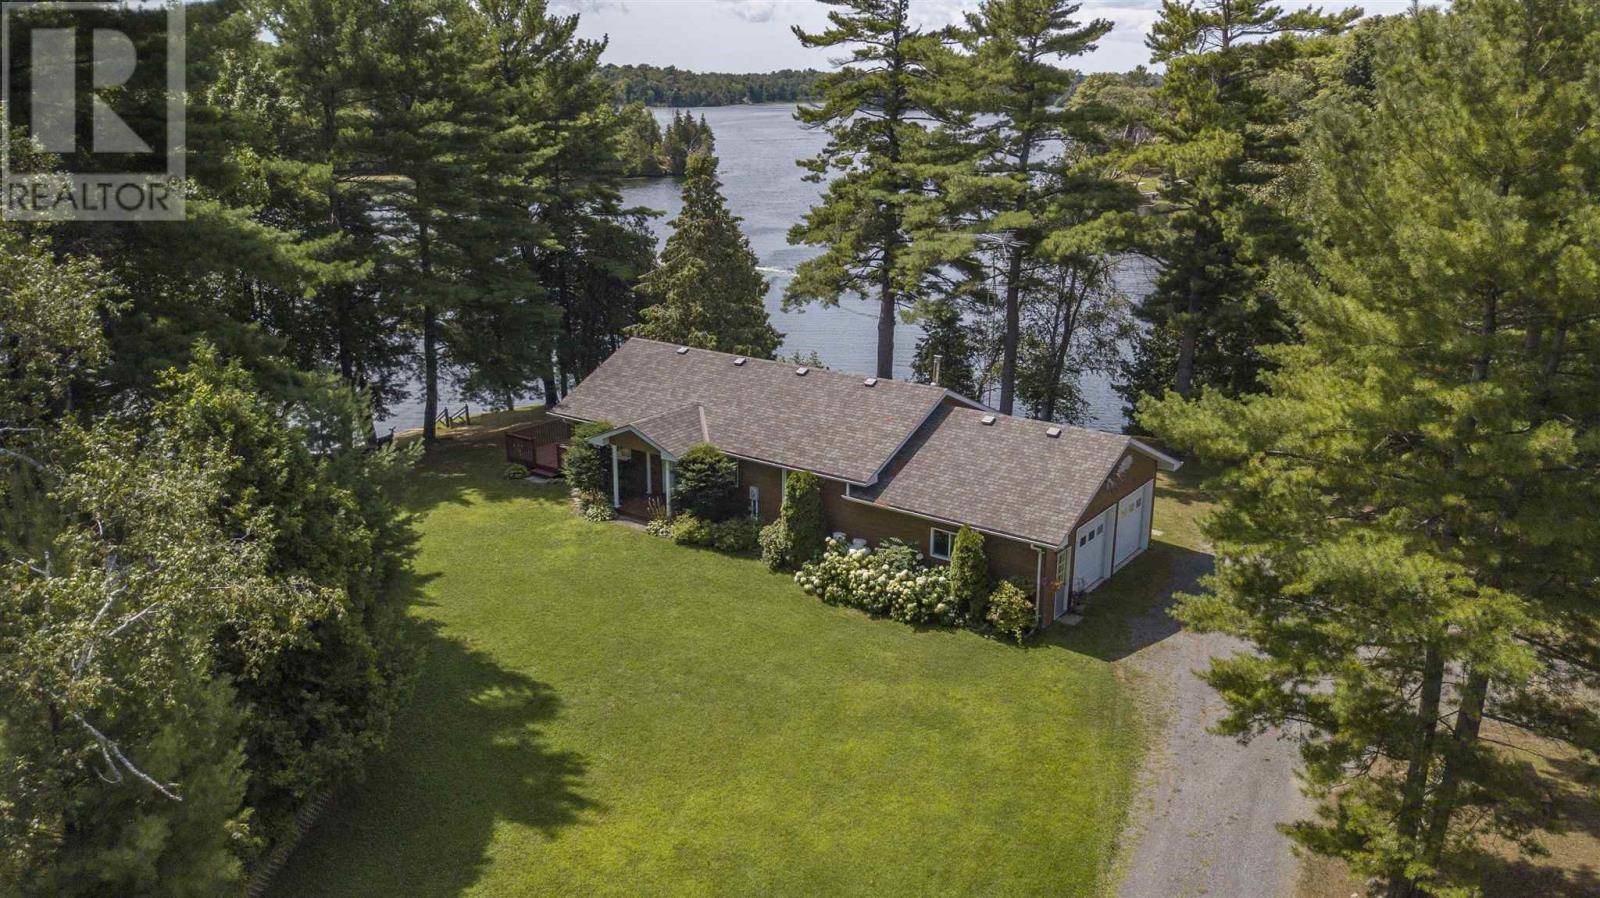 House for sale at 890 Deans Ln Seeley's Bay Ontario - MLS: K19005274